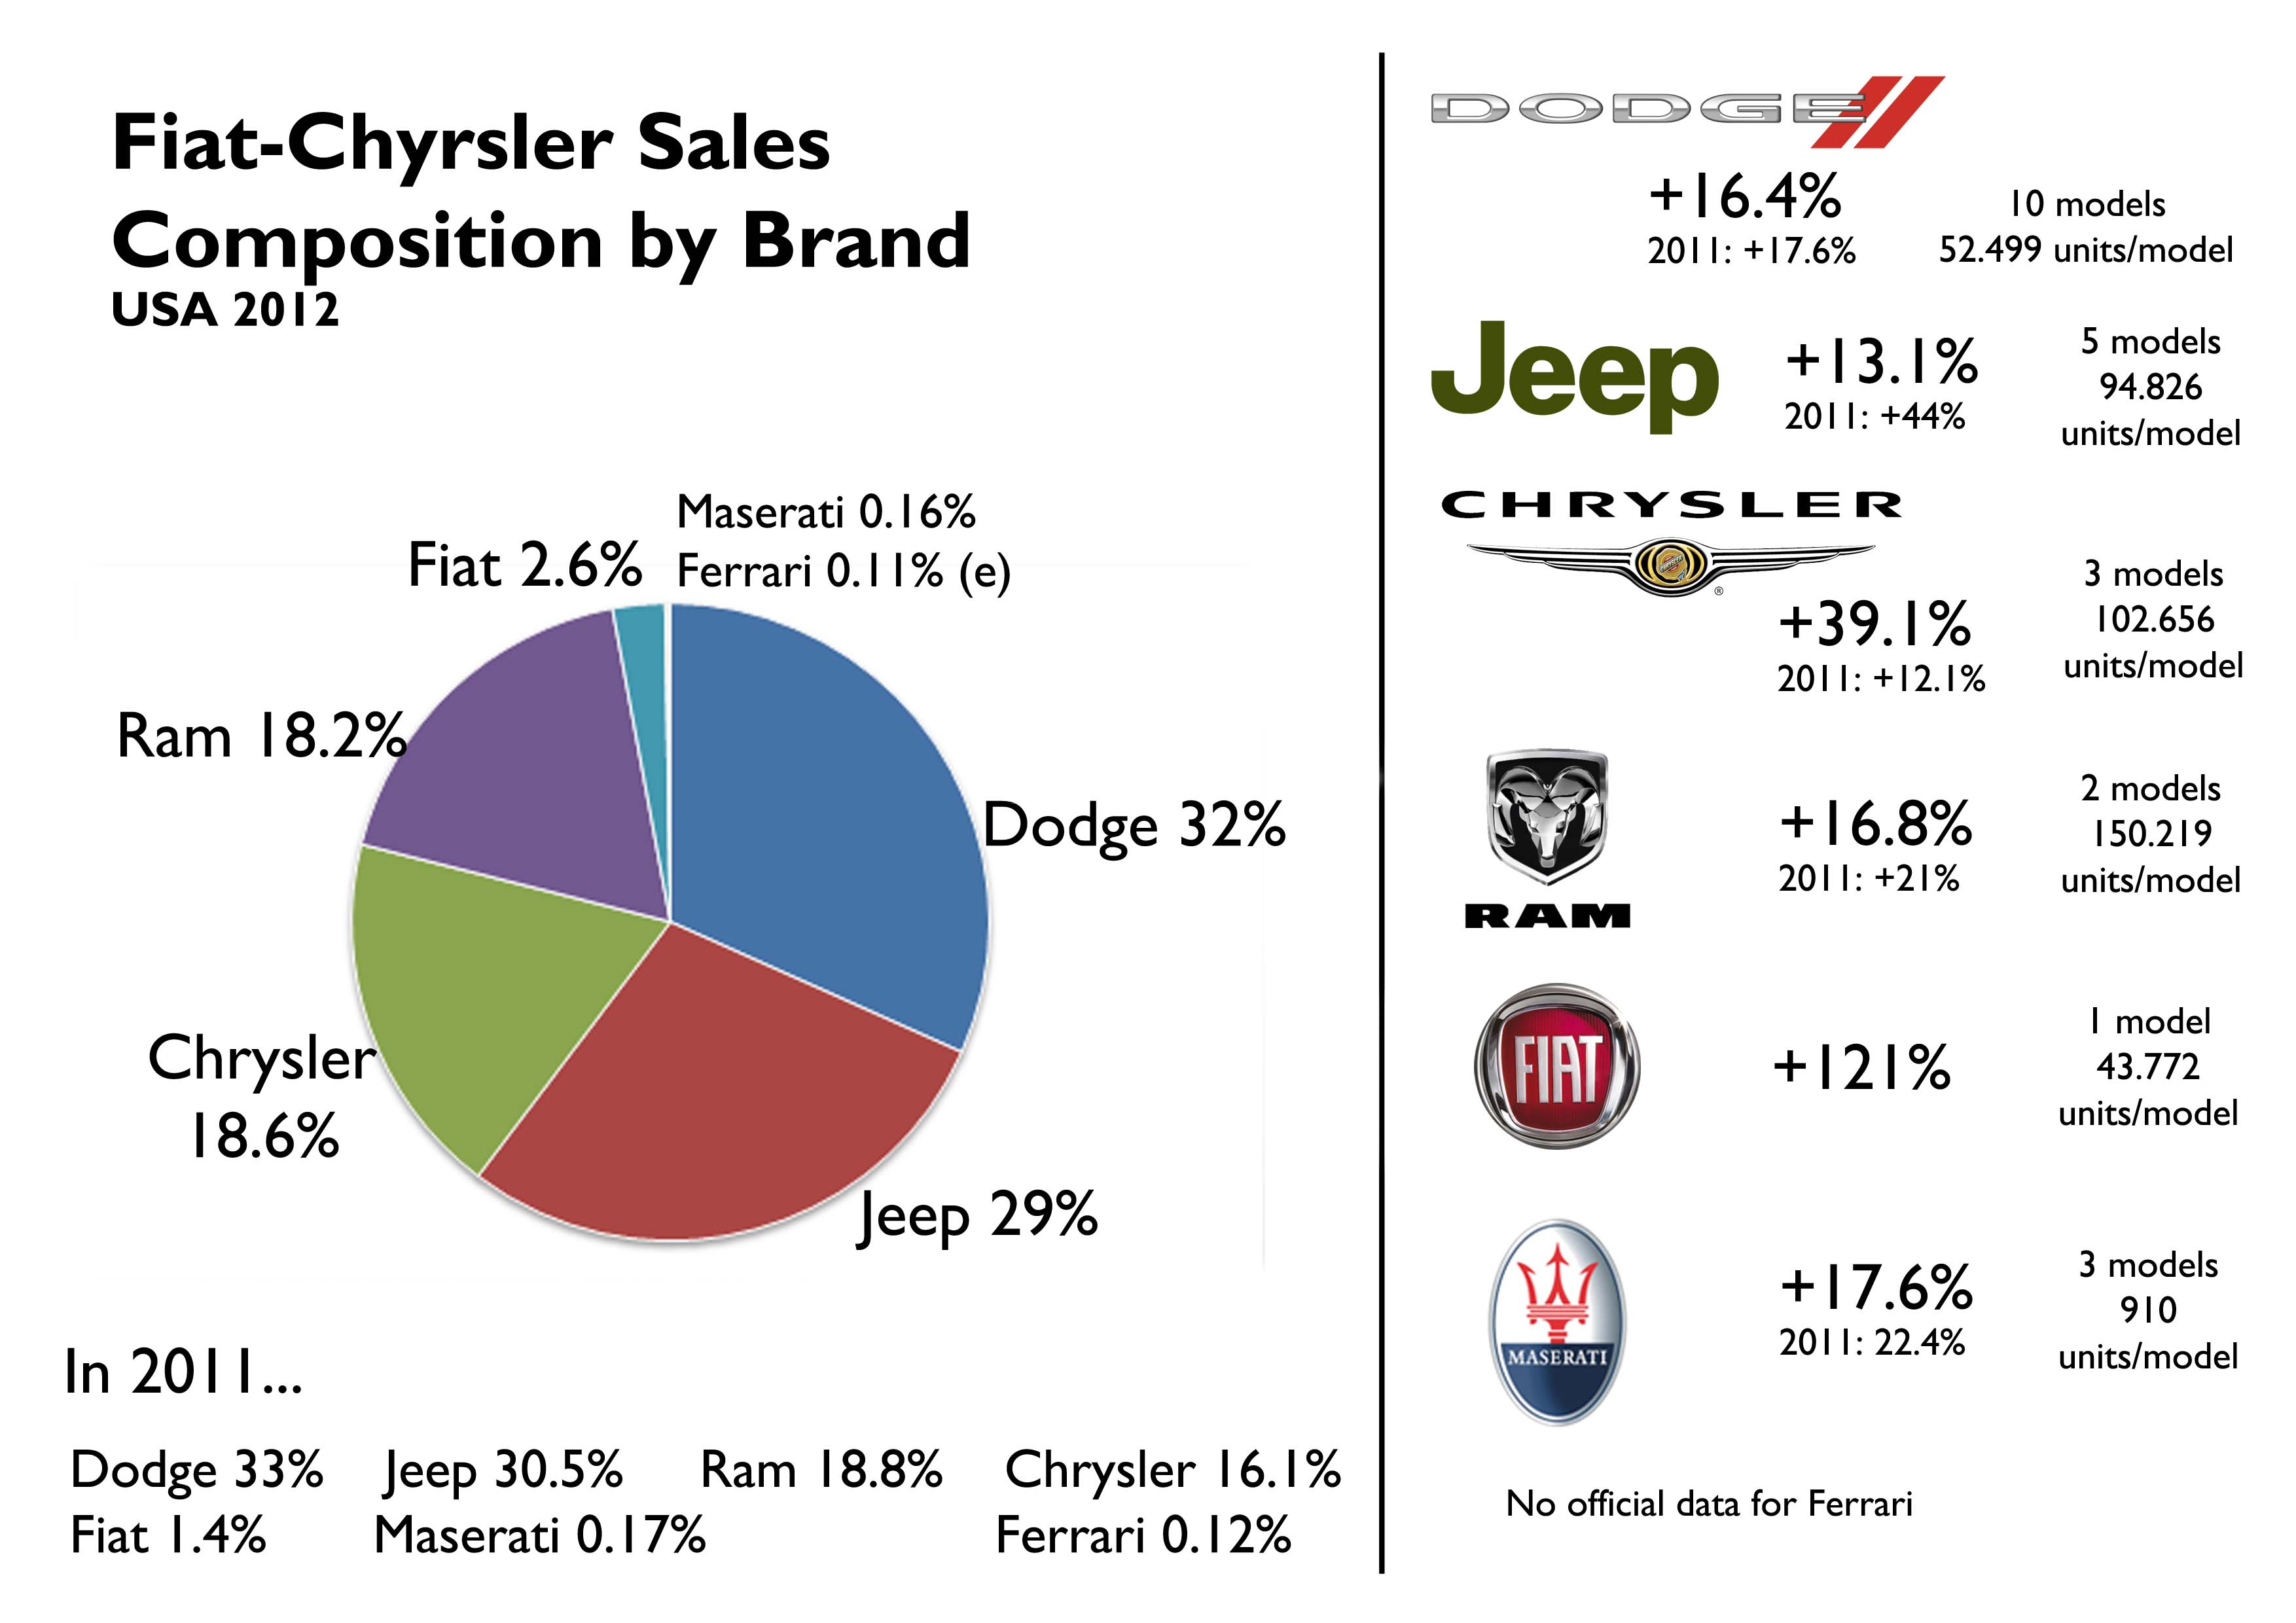 Chrysler brand and fiat had the best performances of the group jeep slowed down but